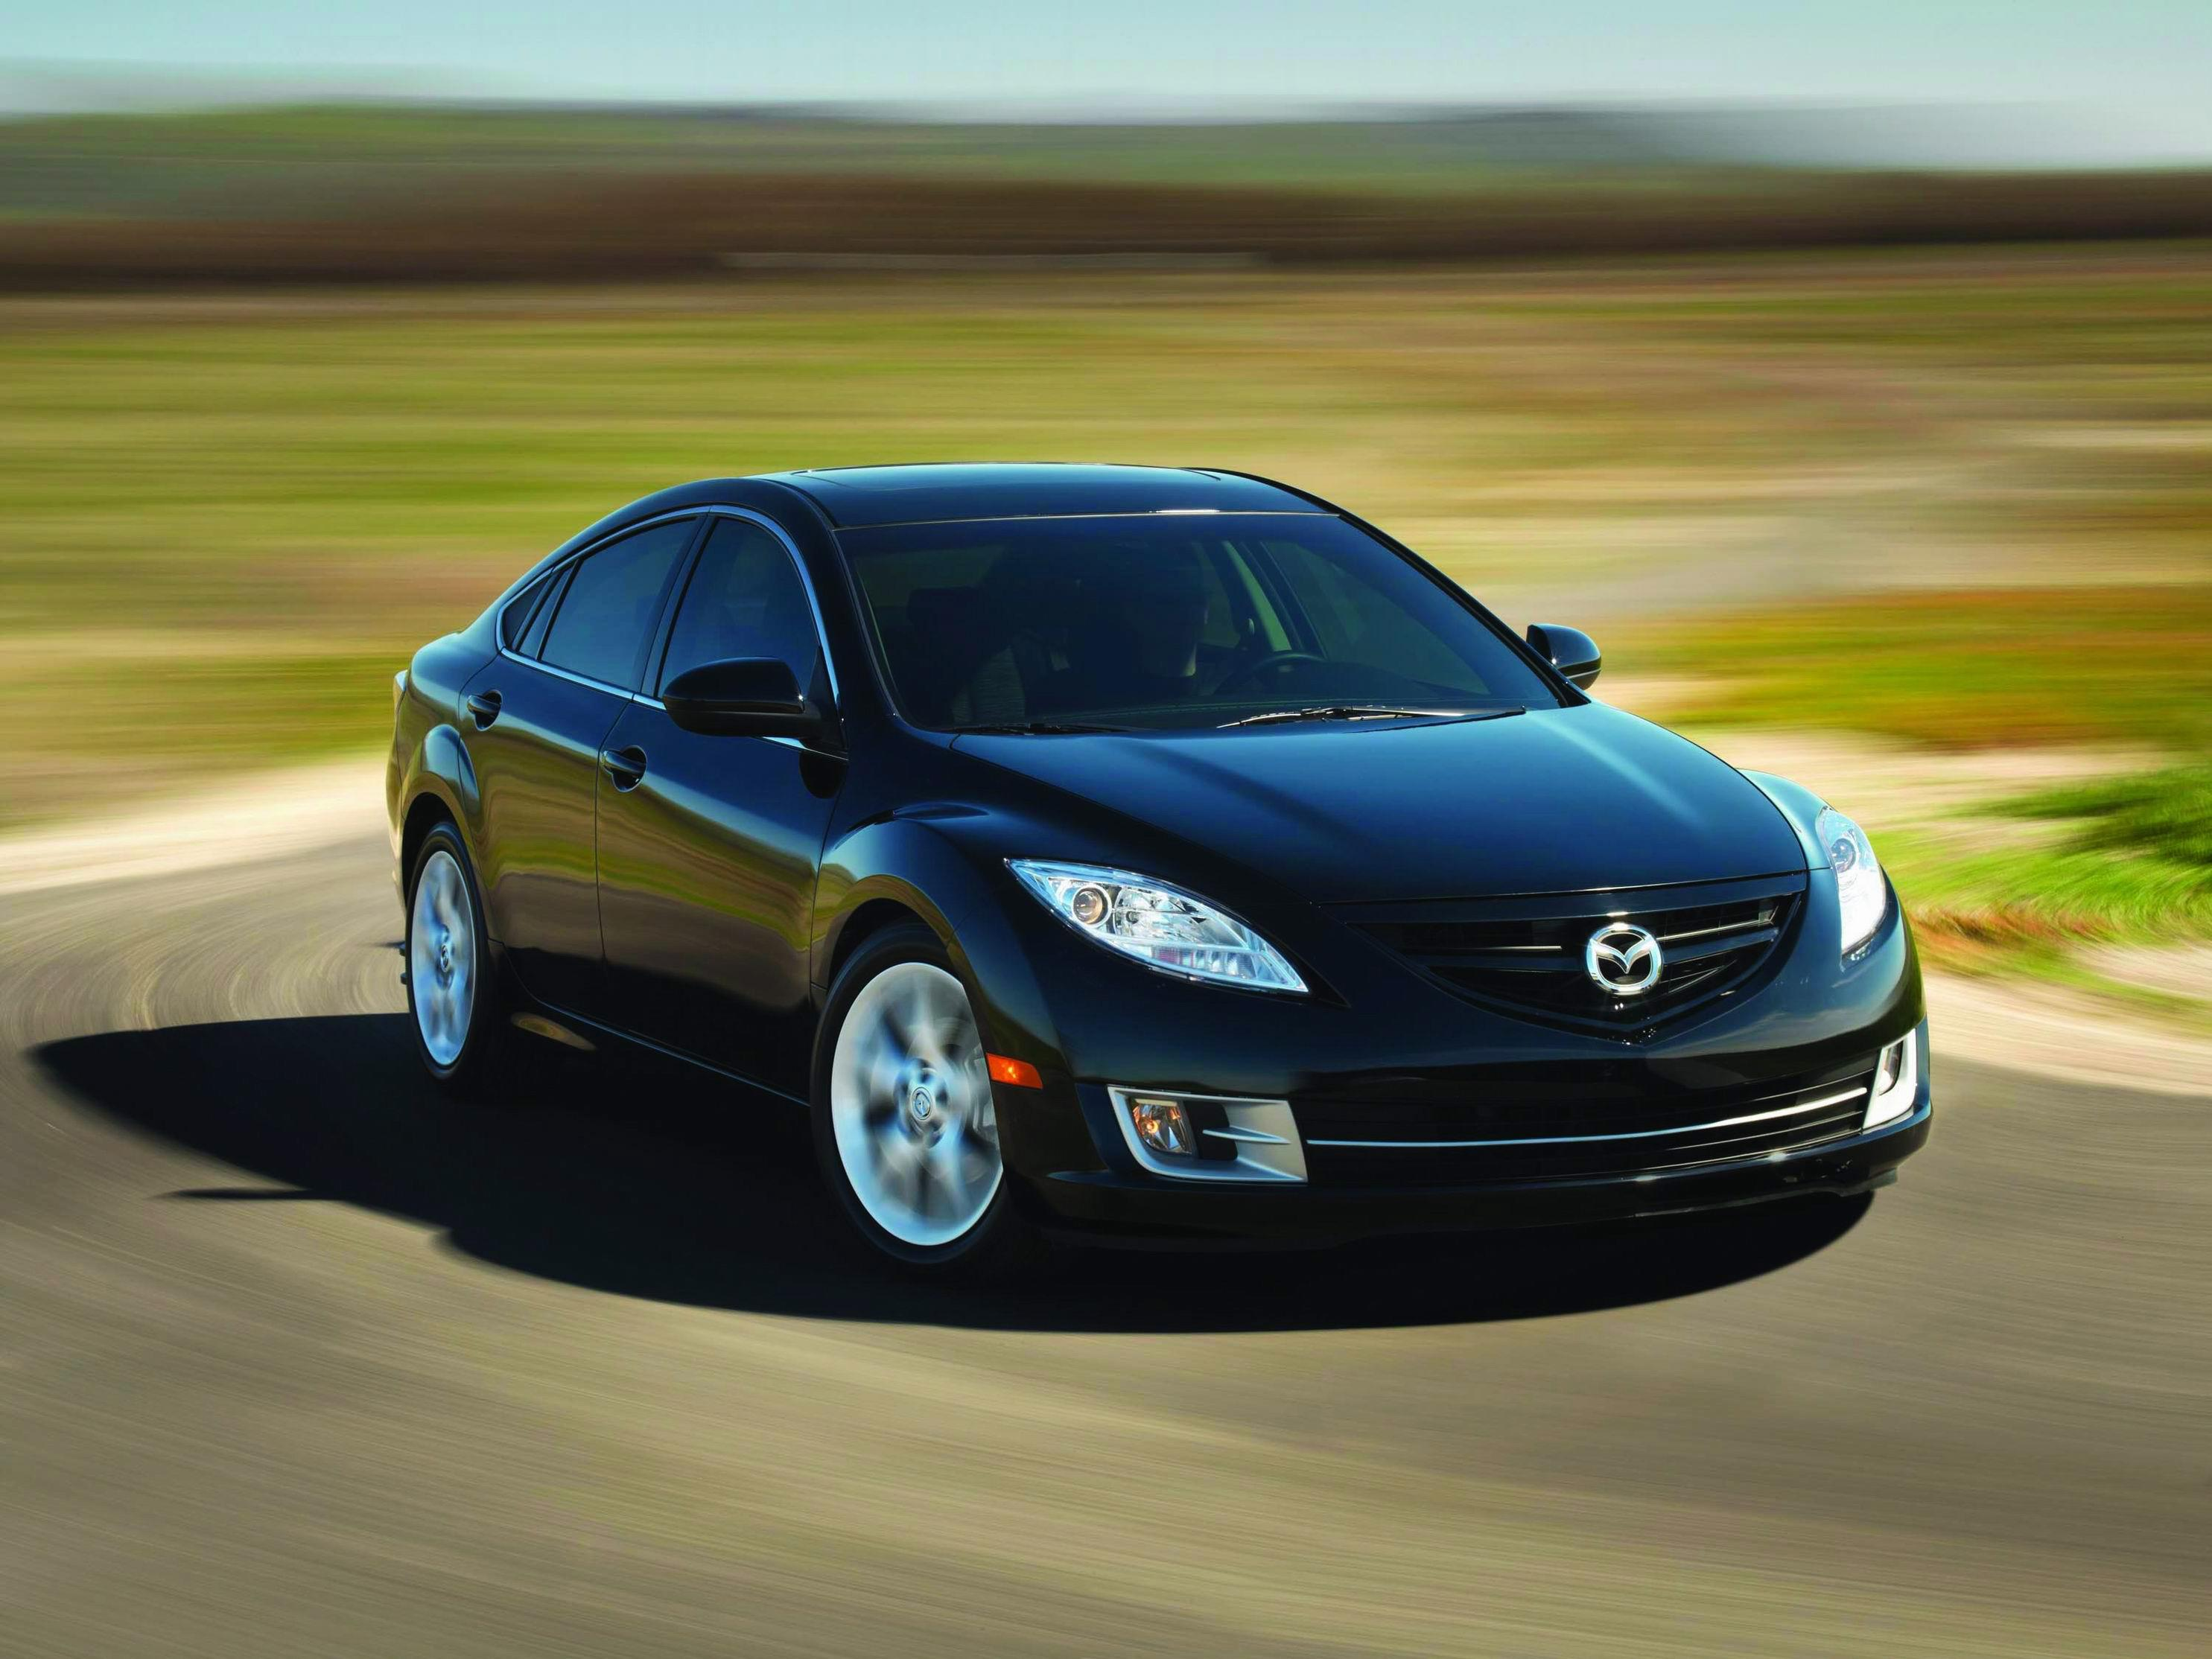 north american all new mazda6 production begins at autoalliance international. Black Bedroom Furniture Sets. Home Design Ideas